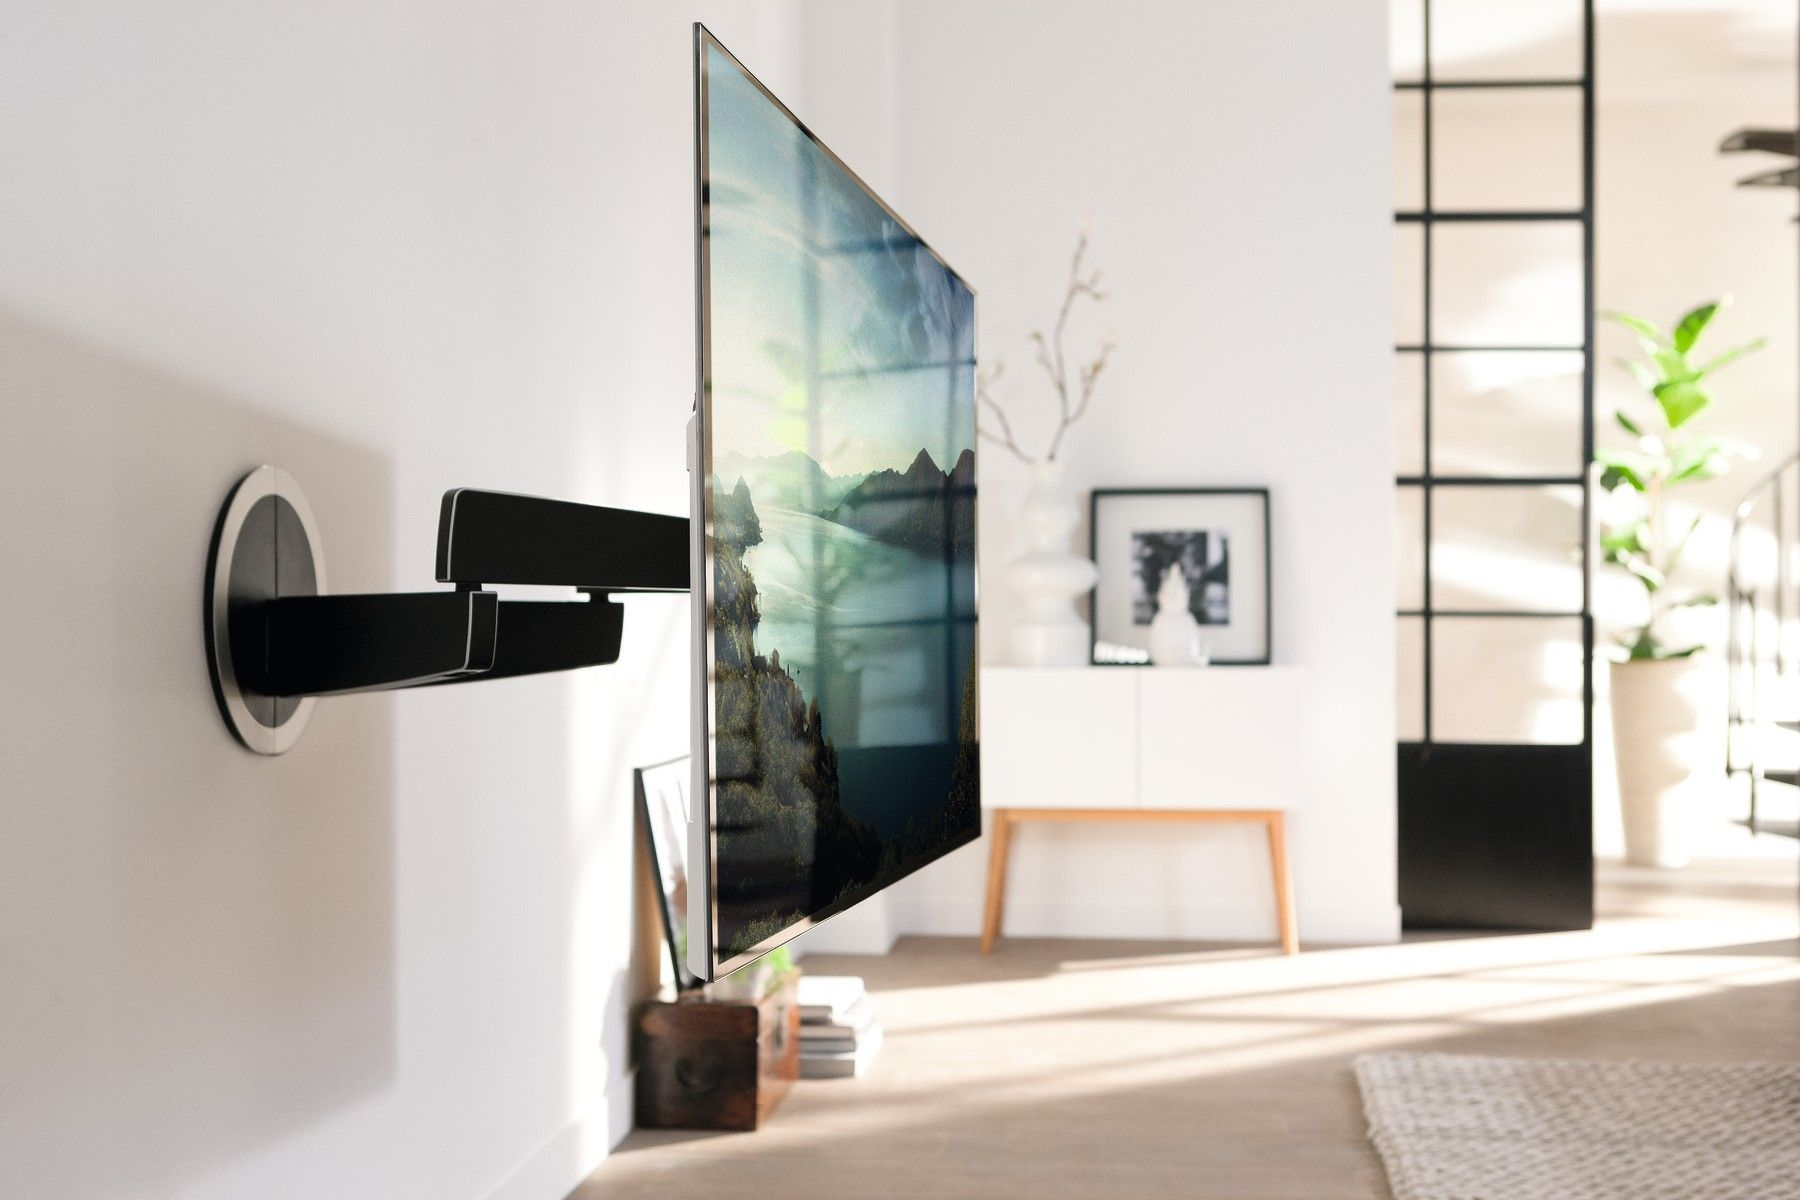 Vogel S Well Known For Its High Quality Tv Wall Mounts Has Now Introduced A Remote Controlled Via Motorised Mount Televisions With Screen